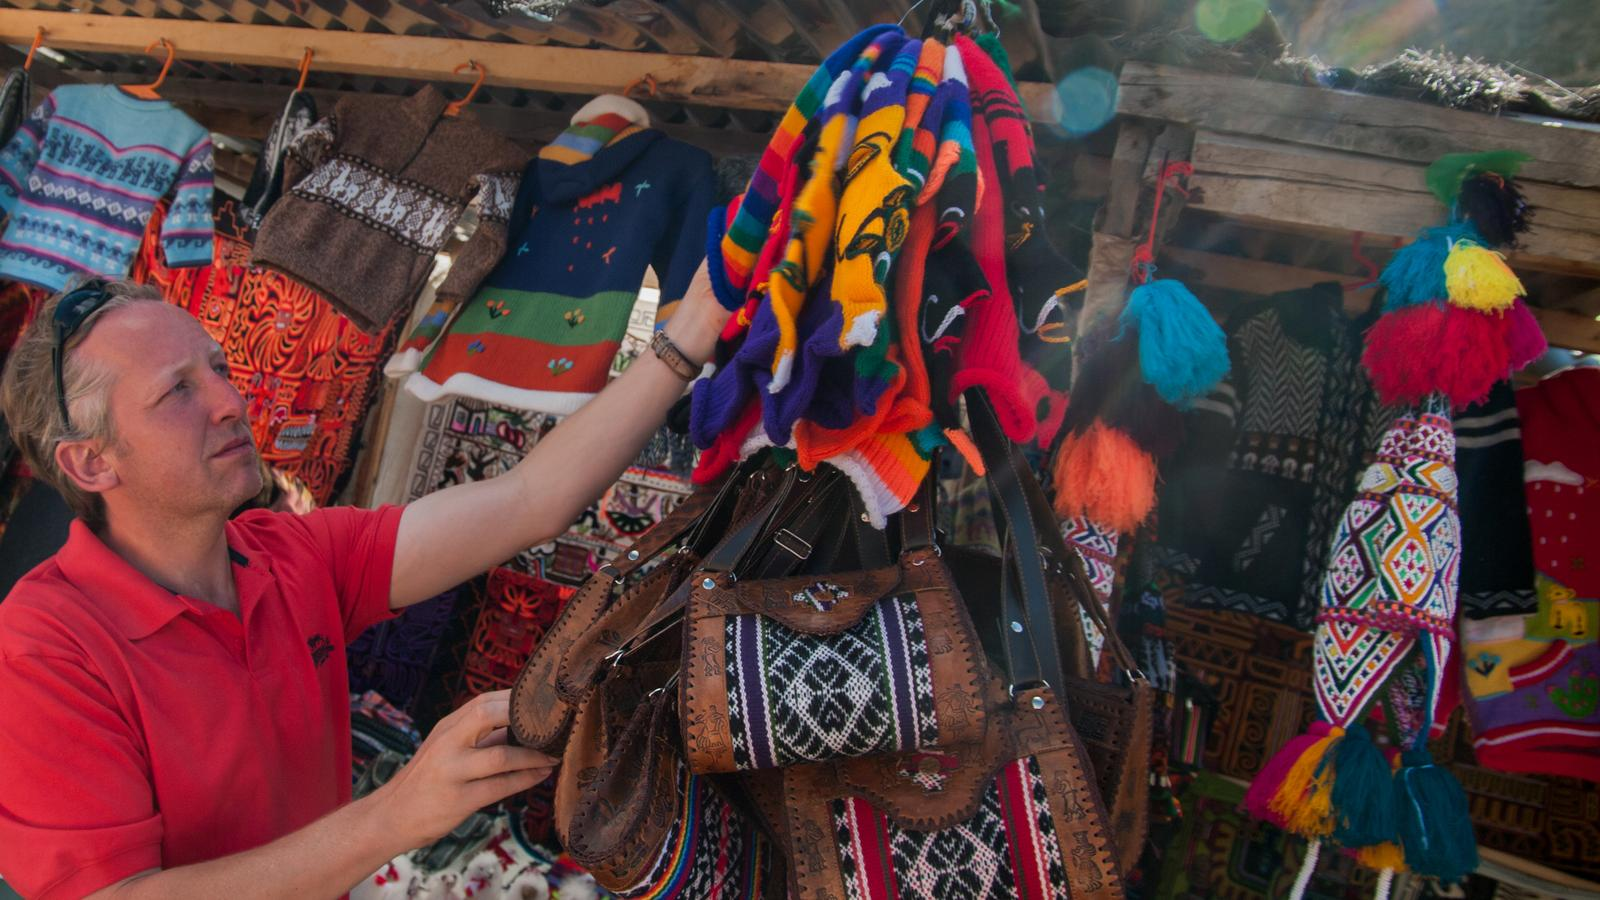 Traveller checking out the market at Machu Picchu